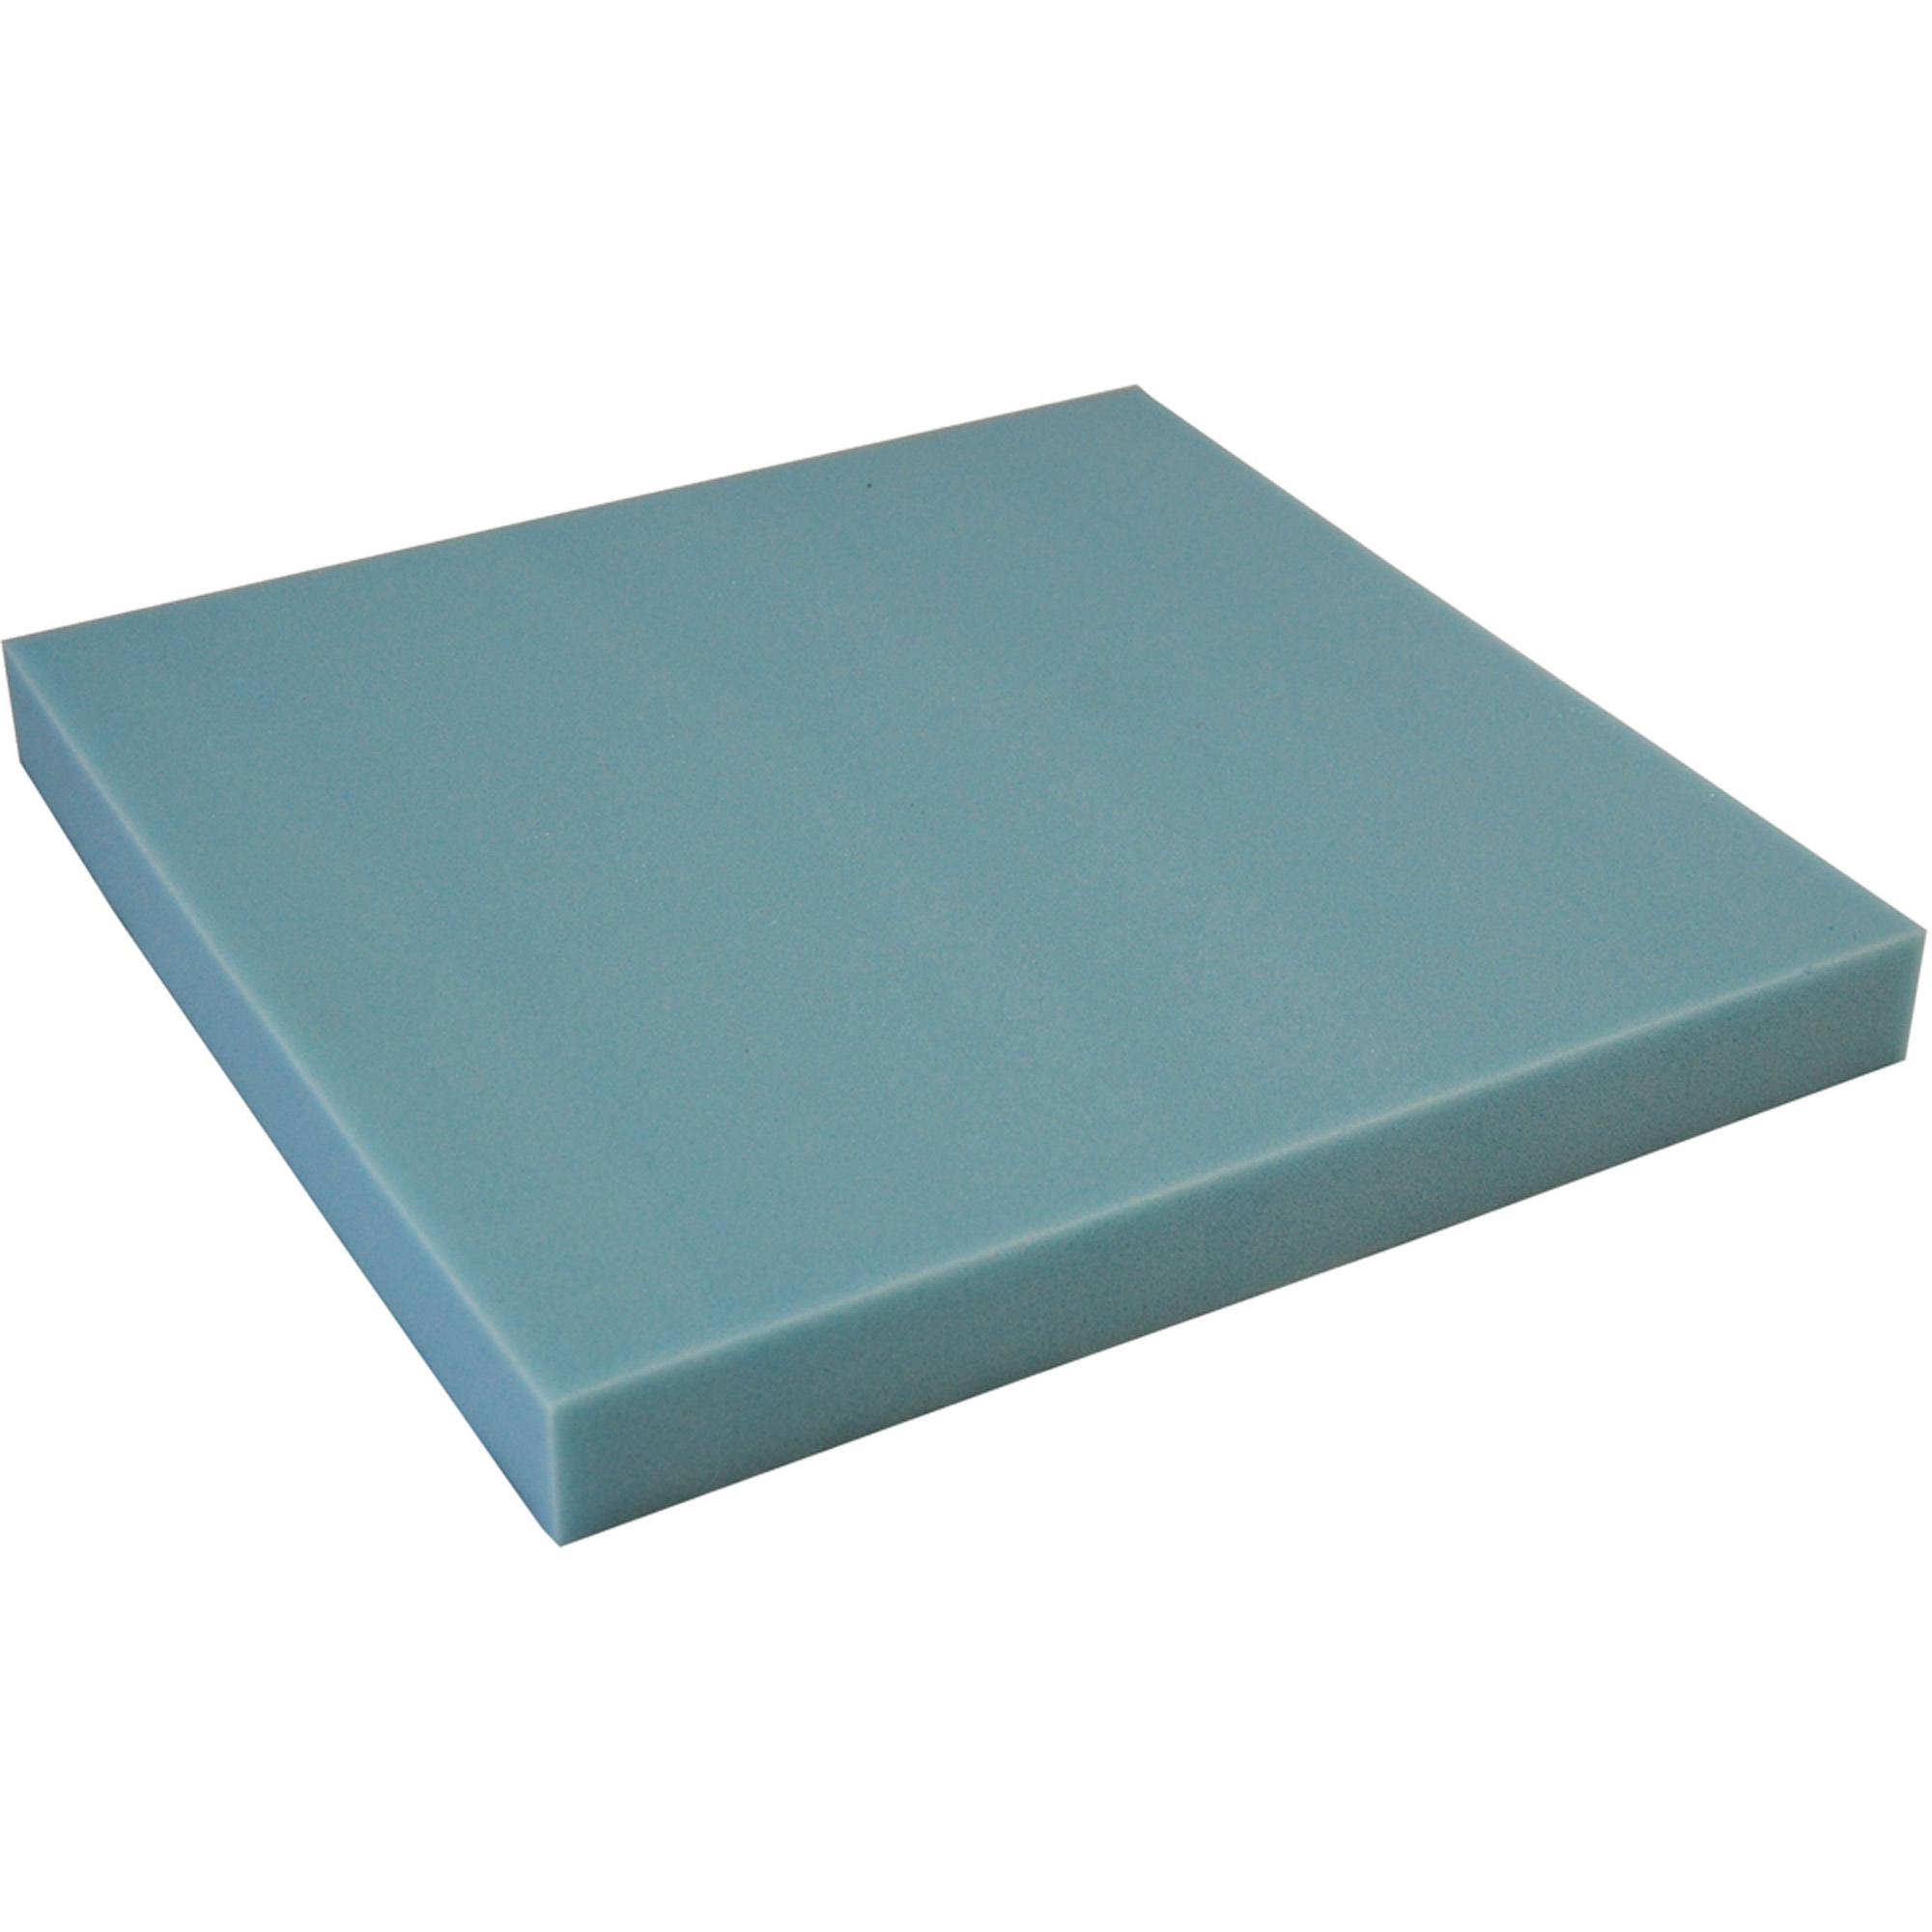 Upholstery Foam High Density | High Density Upholstery Foam | Discount Cushion Foam